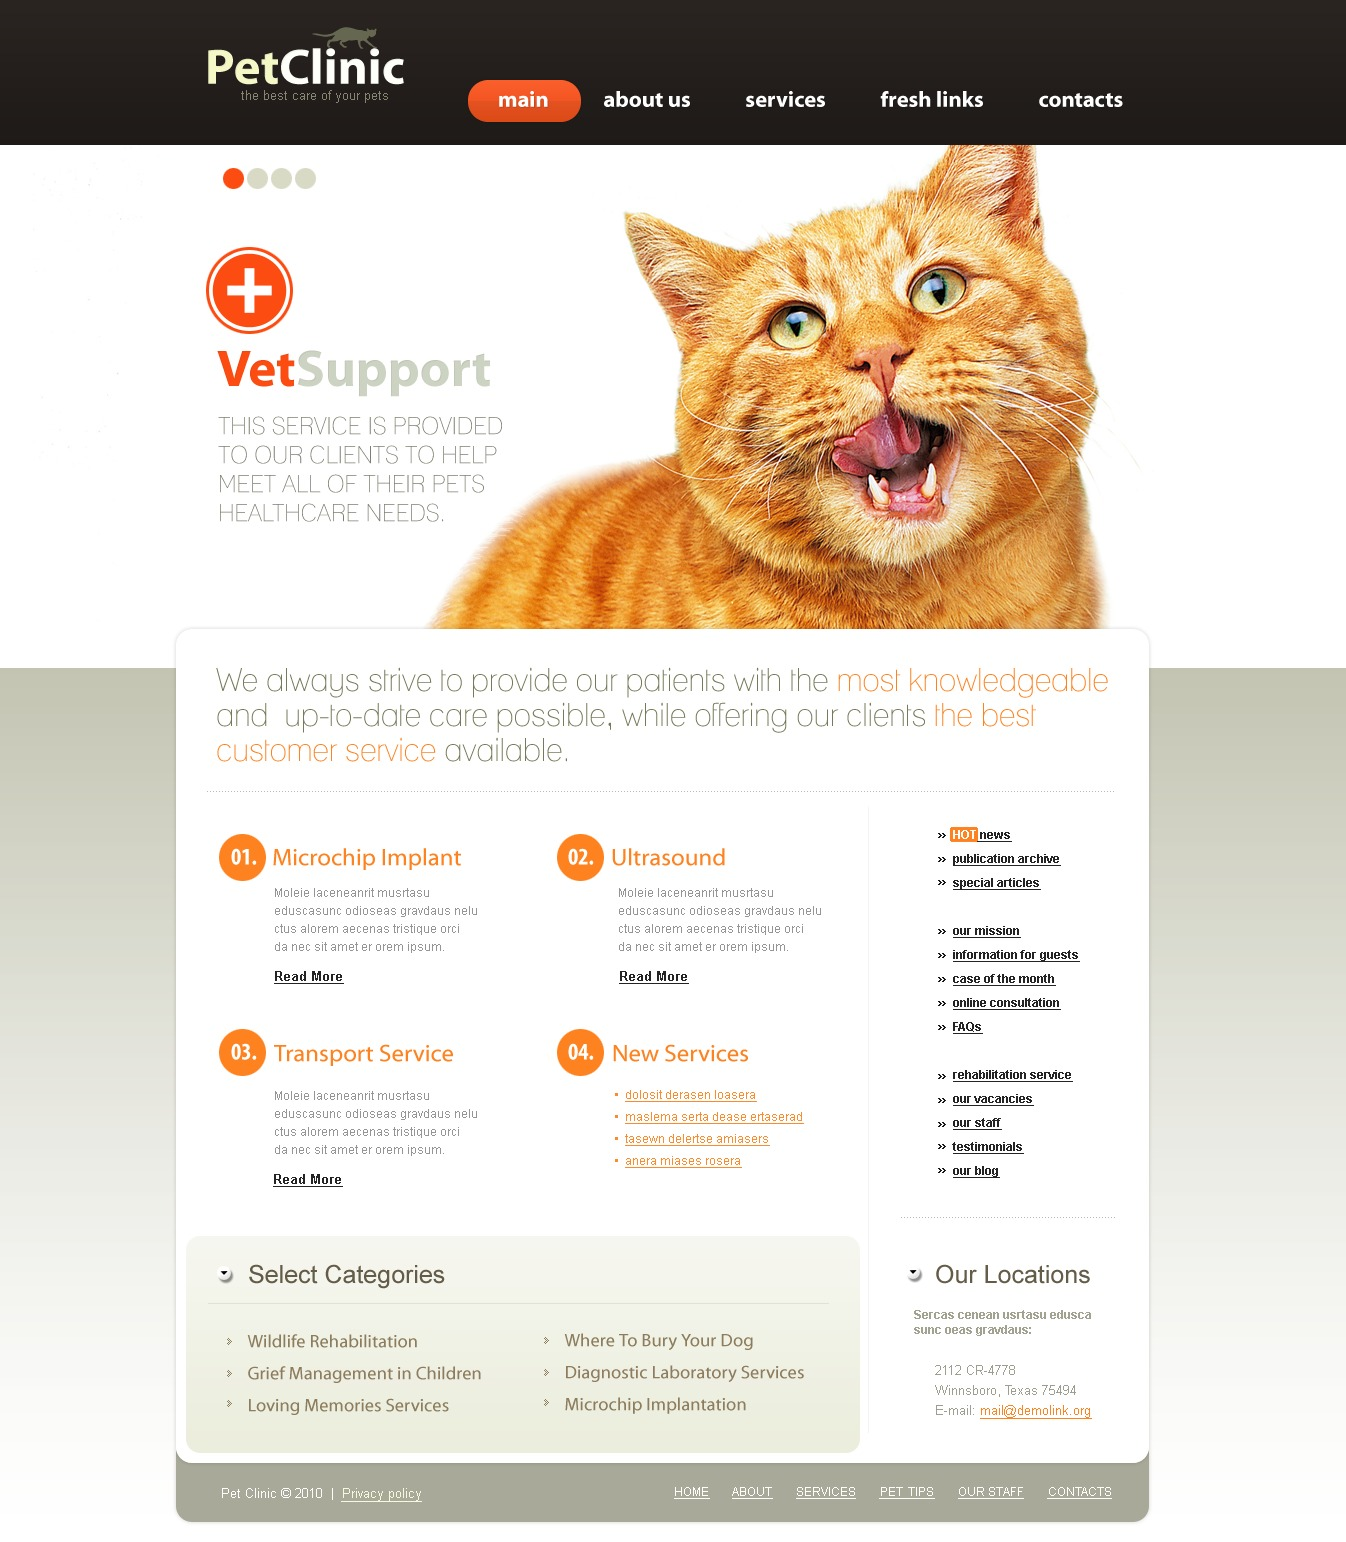 The Pet Clinic Center PSD Design 54396, one of the best PSD templates of its kind (medical, animals & pets, wide, jquery), also known as pet clinic center PSD template, veterinarian PSD template, pets PSD template, hospital care PSD template, health PSD template, cat PSD template, dog PSD template, doctors PSD template, puppy PSD template, kitten clinical PSD template, veterinary PSD template, vet PSD template, tips PSD template, feed PSD template, medicine PSD template, staff PSD template, services PSD template, breed PSD template, age PSD template, color PSD template, accommodation PSD template, adaptable PSD template, pet PSD template, apparel PSD template, bed PSD template, dishes PSD template, bowl PSD template, cleanup PSD template, collar PSD template, flea PSD template, tick PSD template, grooming PSD template, supplies and related with pet clinic center, veterinarian, pets, hospital care, health, cat, dog, doctors, puppy, kitten clinical, veterinary, vet, tips, feed, medicine, staff, services, breed, age, color, accommodation, adaptable, pet, apparel, bed, dishes, bowl, cleanup, collar, flea, tick, grooming, supplies, etc.